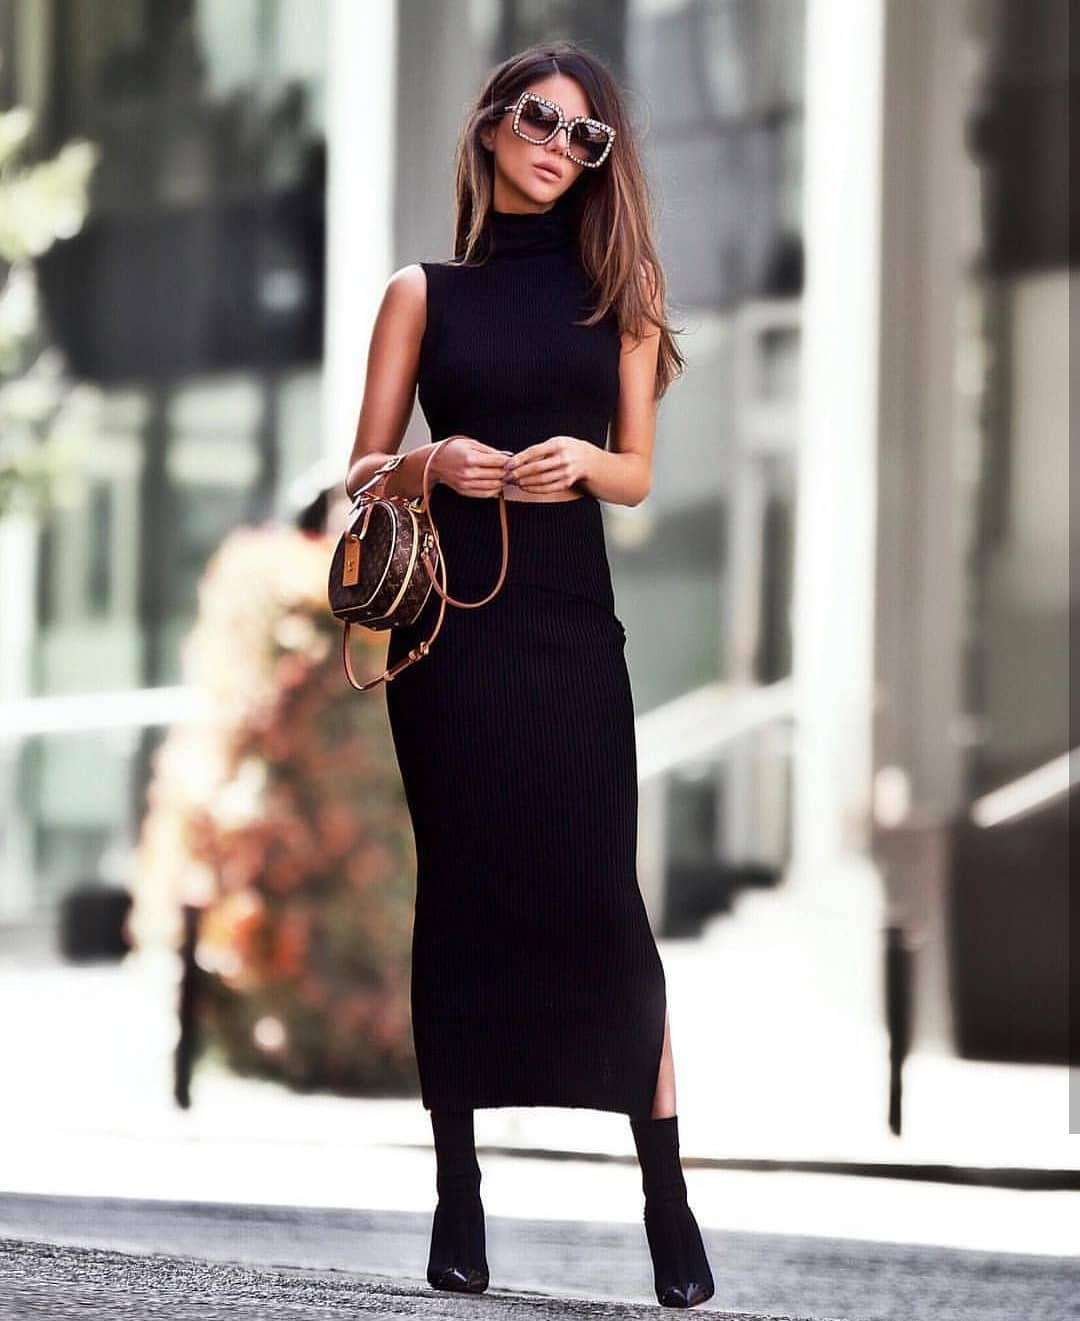 Two Piece Knitted Dress In Black For Fall 2019